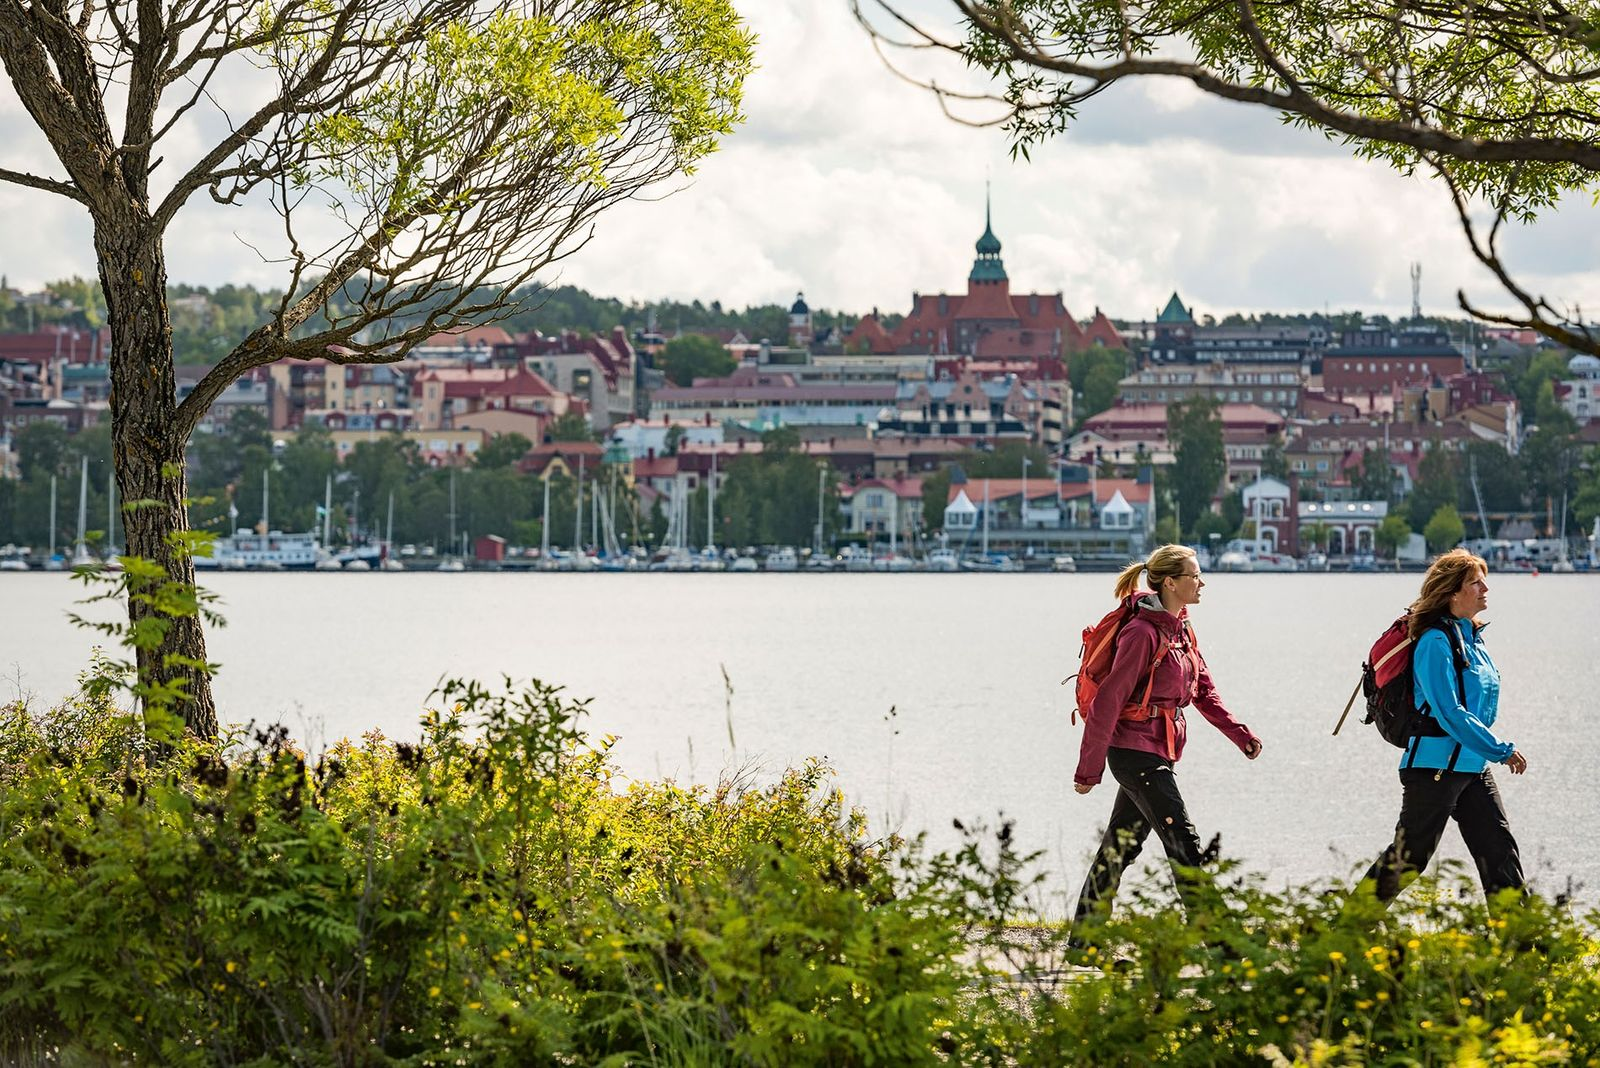 Walking along the shores of Lake Storsjön with the city of Östersund in the background.